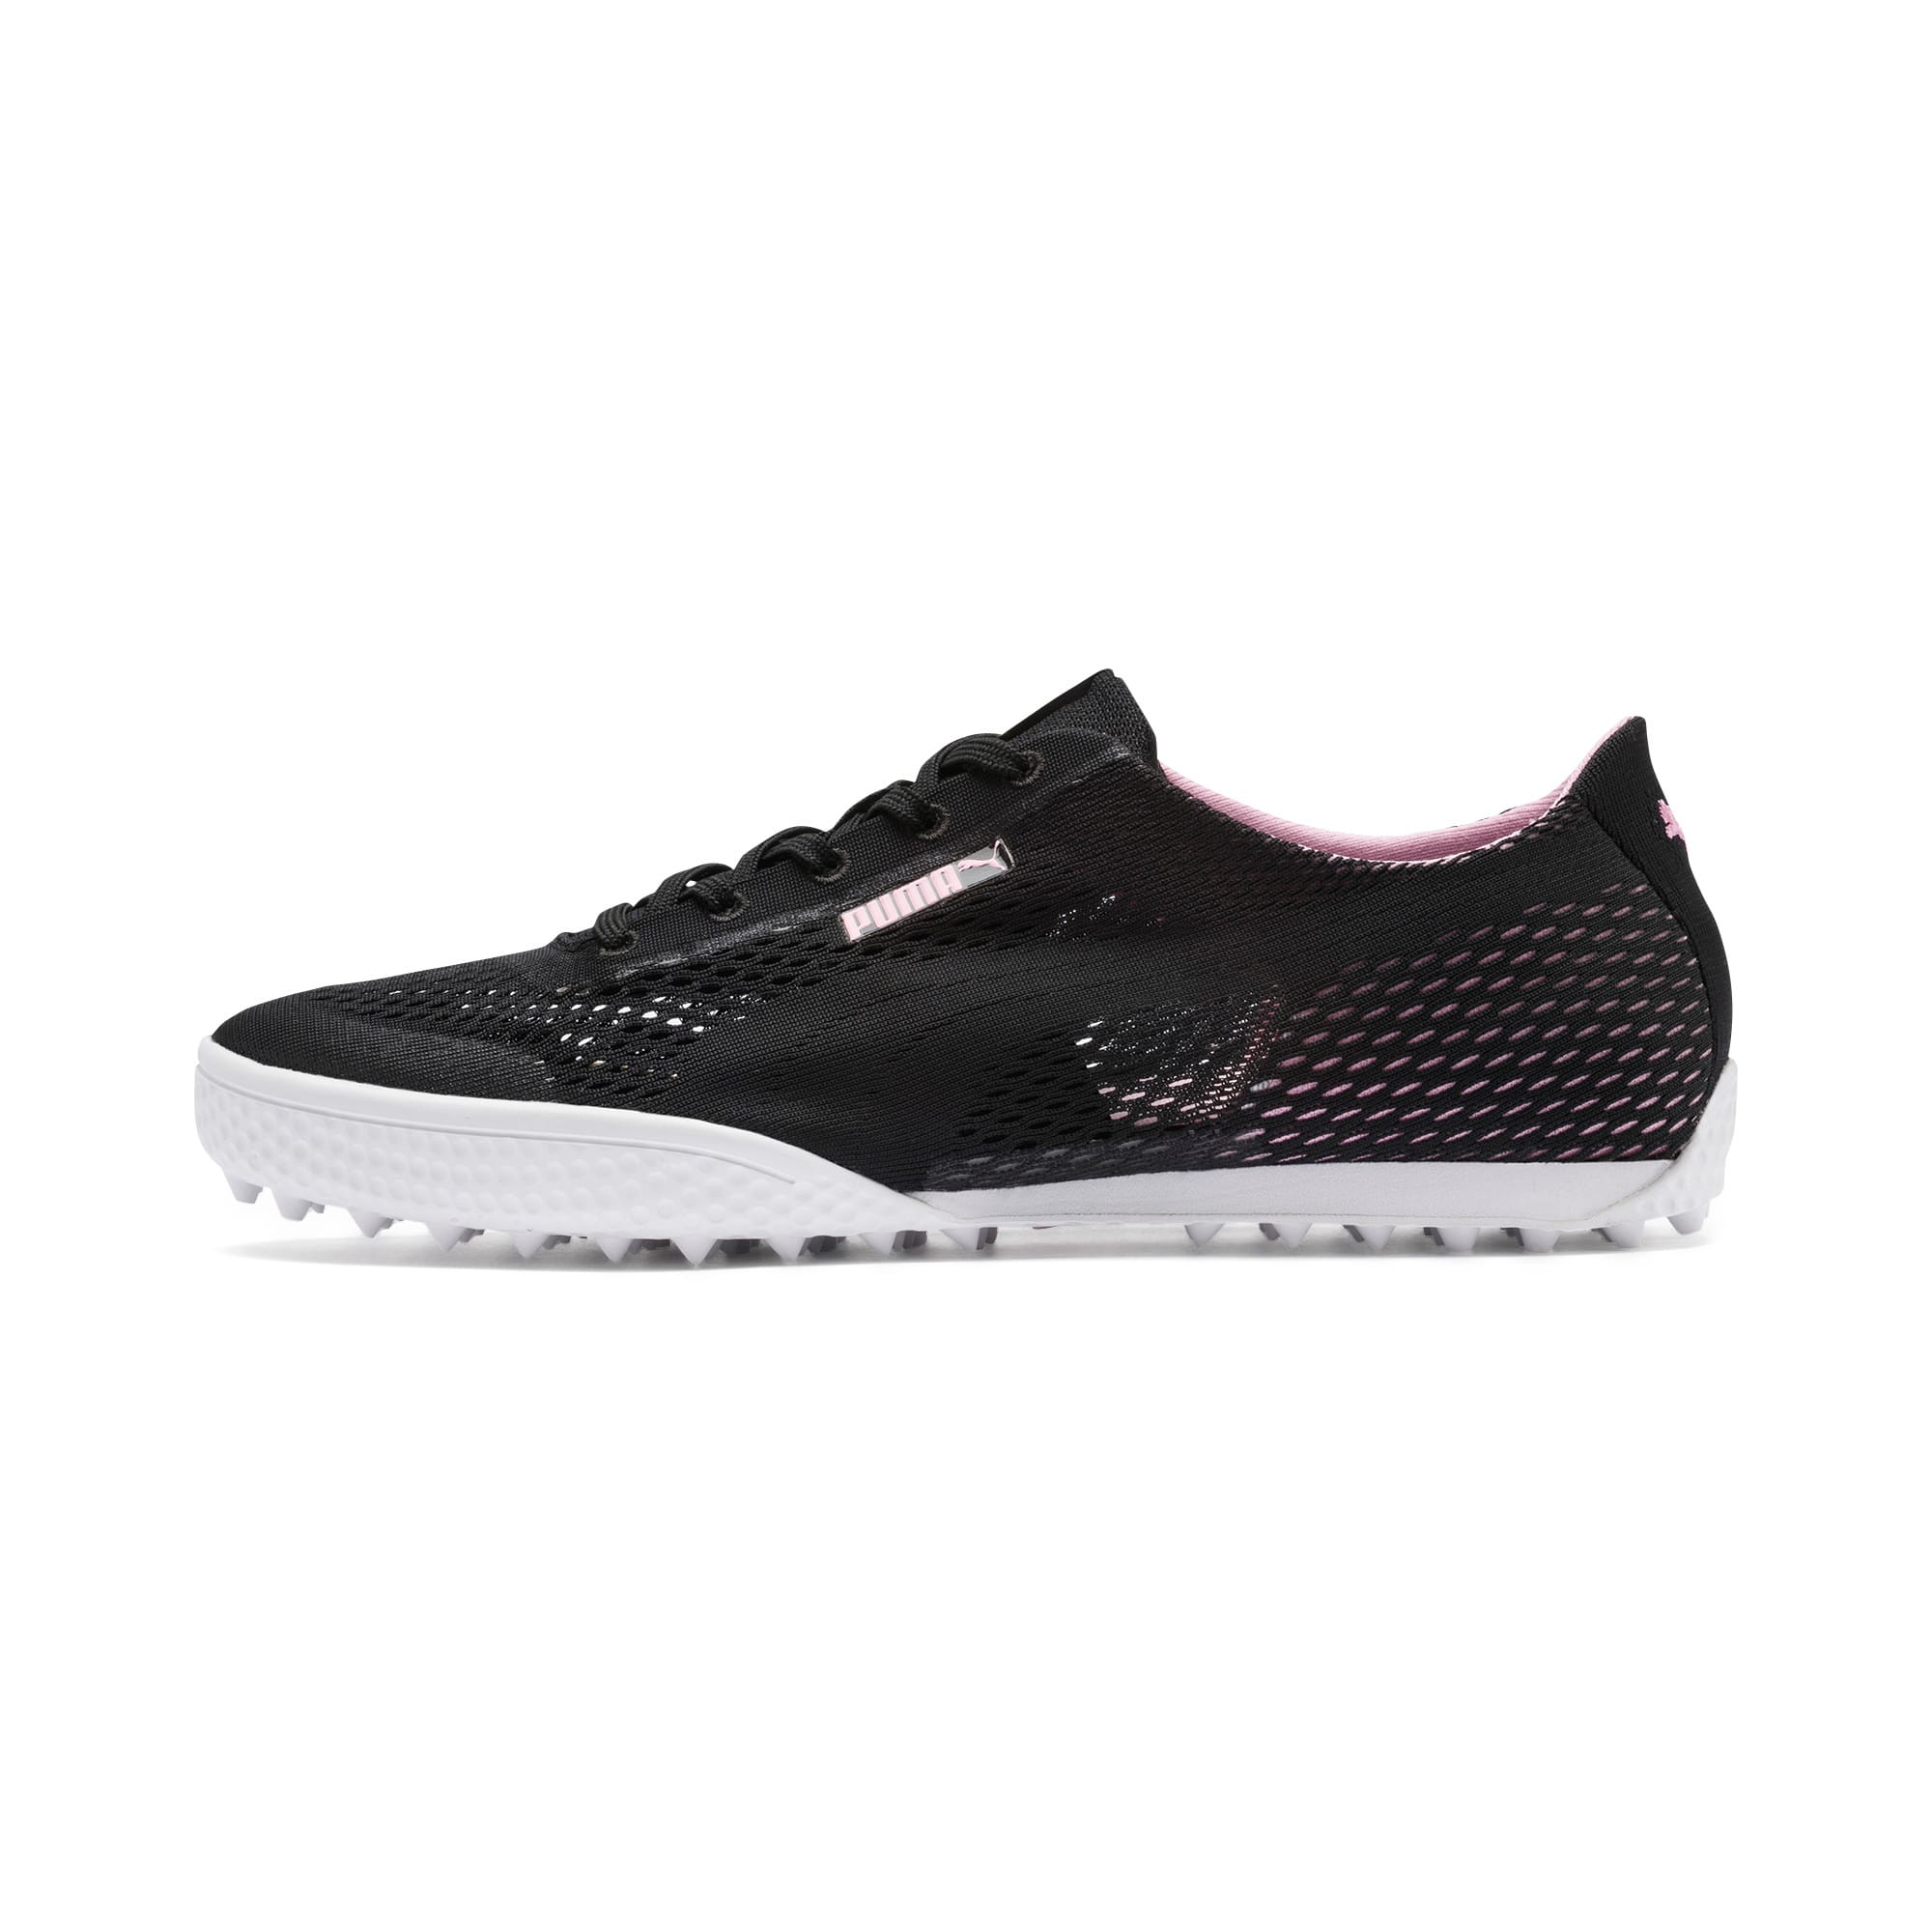 Thumbnail 1 of Monolite Cat Woven Women's Golf Shoes, Puma Black-Pale Pink, medium